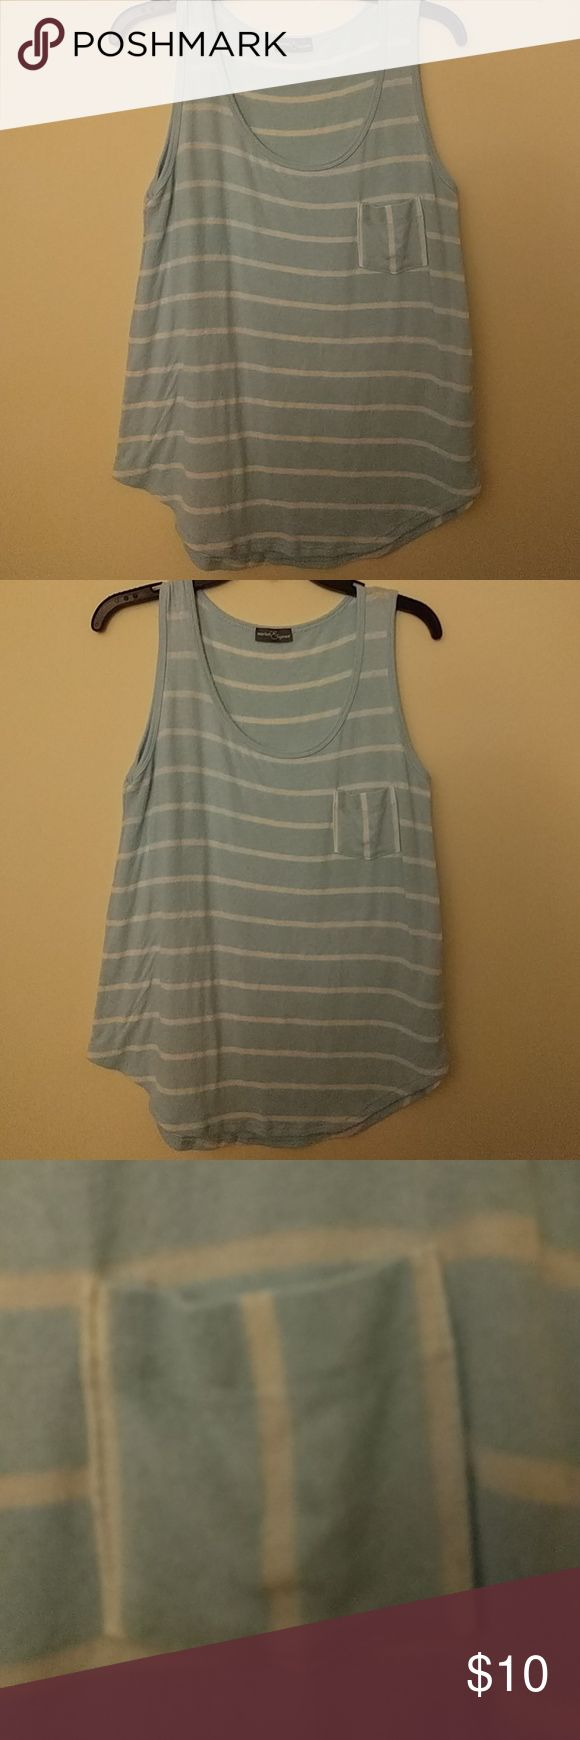 GUC Market & Spruce Sleeveless Sweater Sz XL Well loved, but some life left in it. Gorgeous baby blue. Slight pilling. No stains or holes. N/S pet free home.  Tag: Stitch Fix Stitch Fix Tops